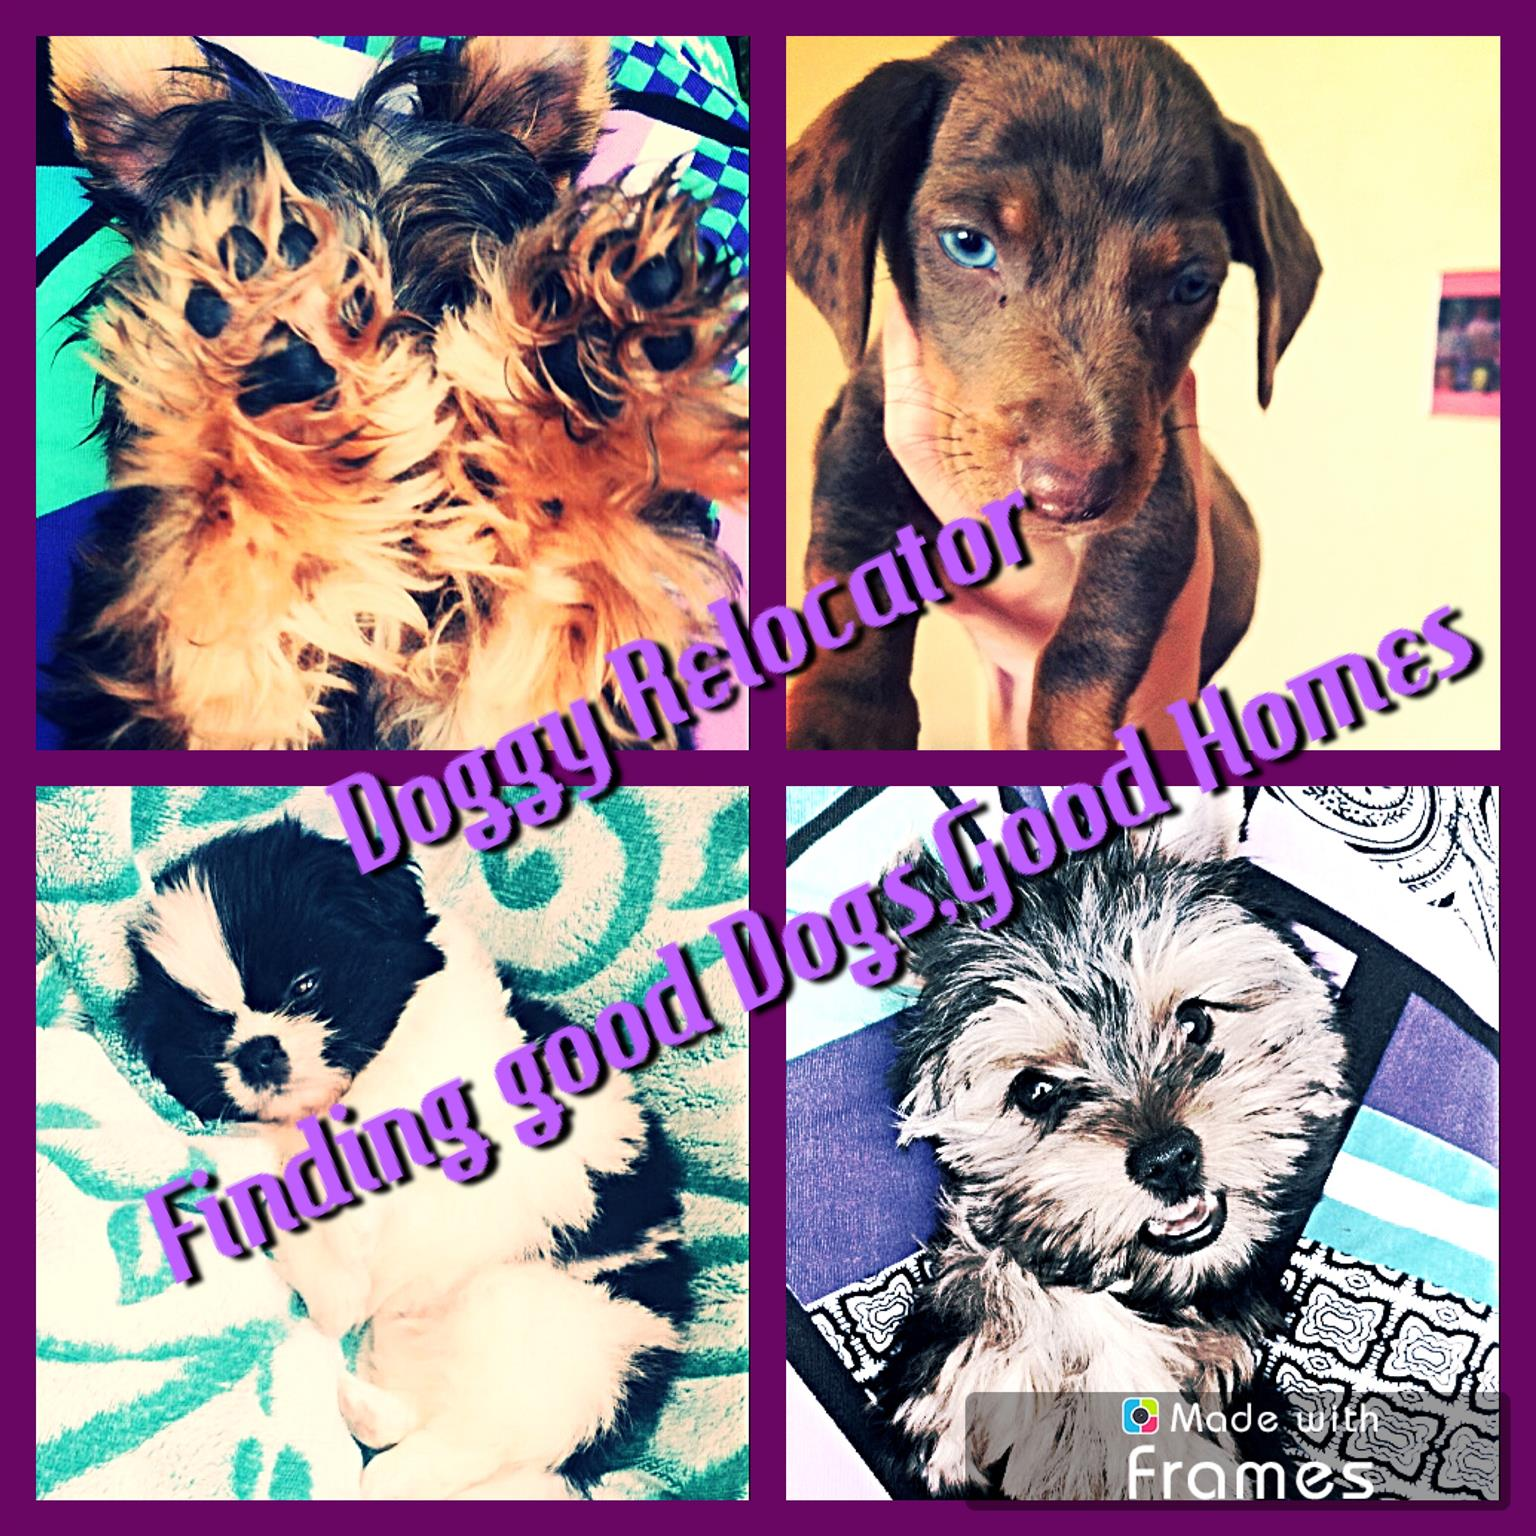 Doggy Relocator-Finding Good Dogs ,Good Homes.